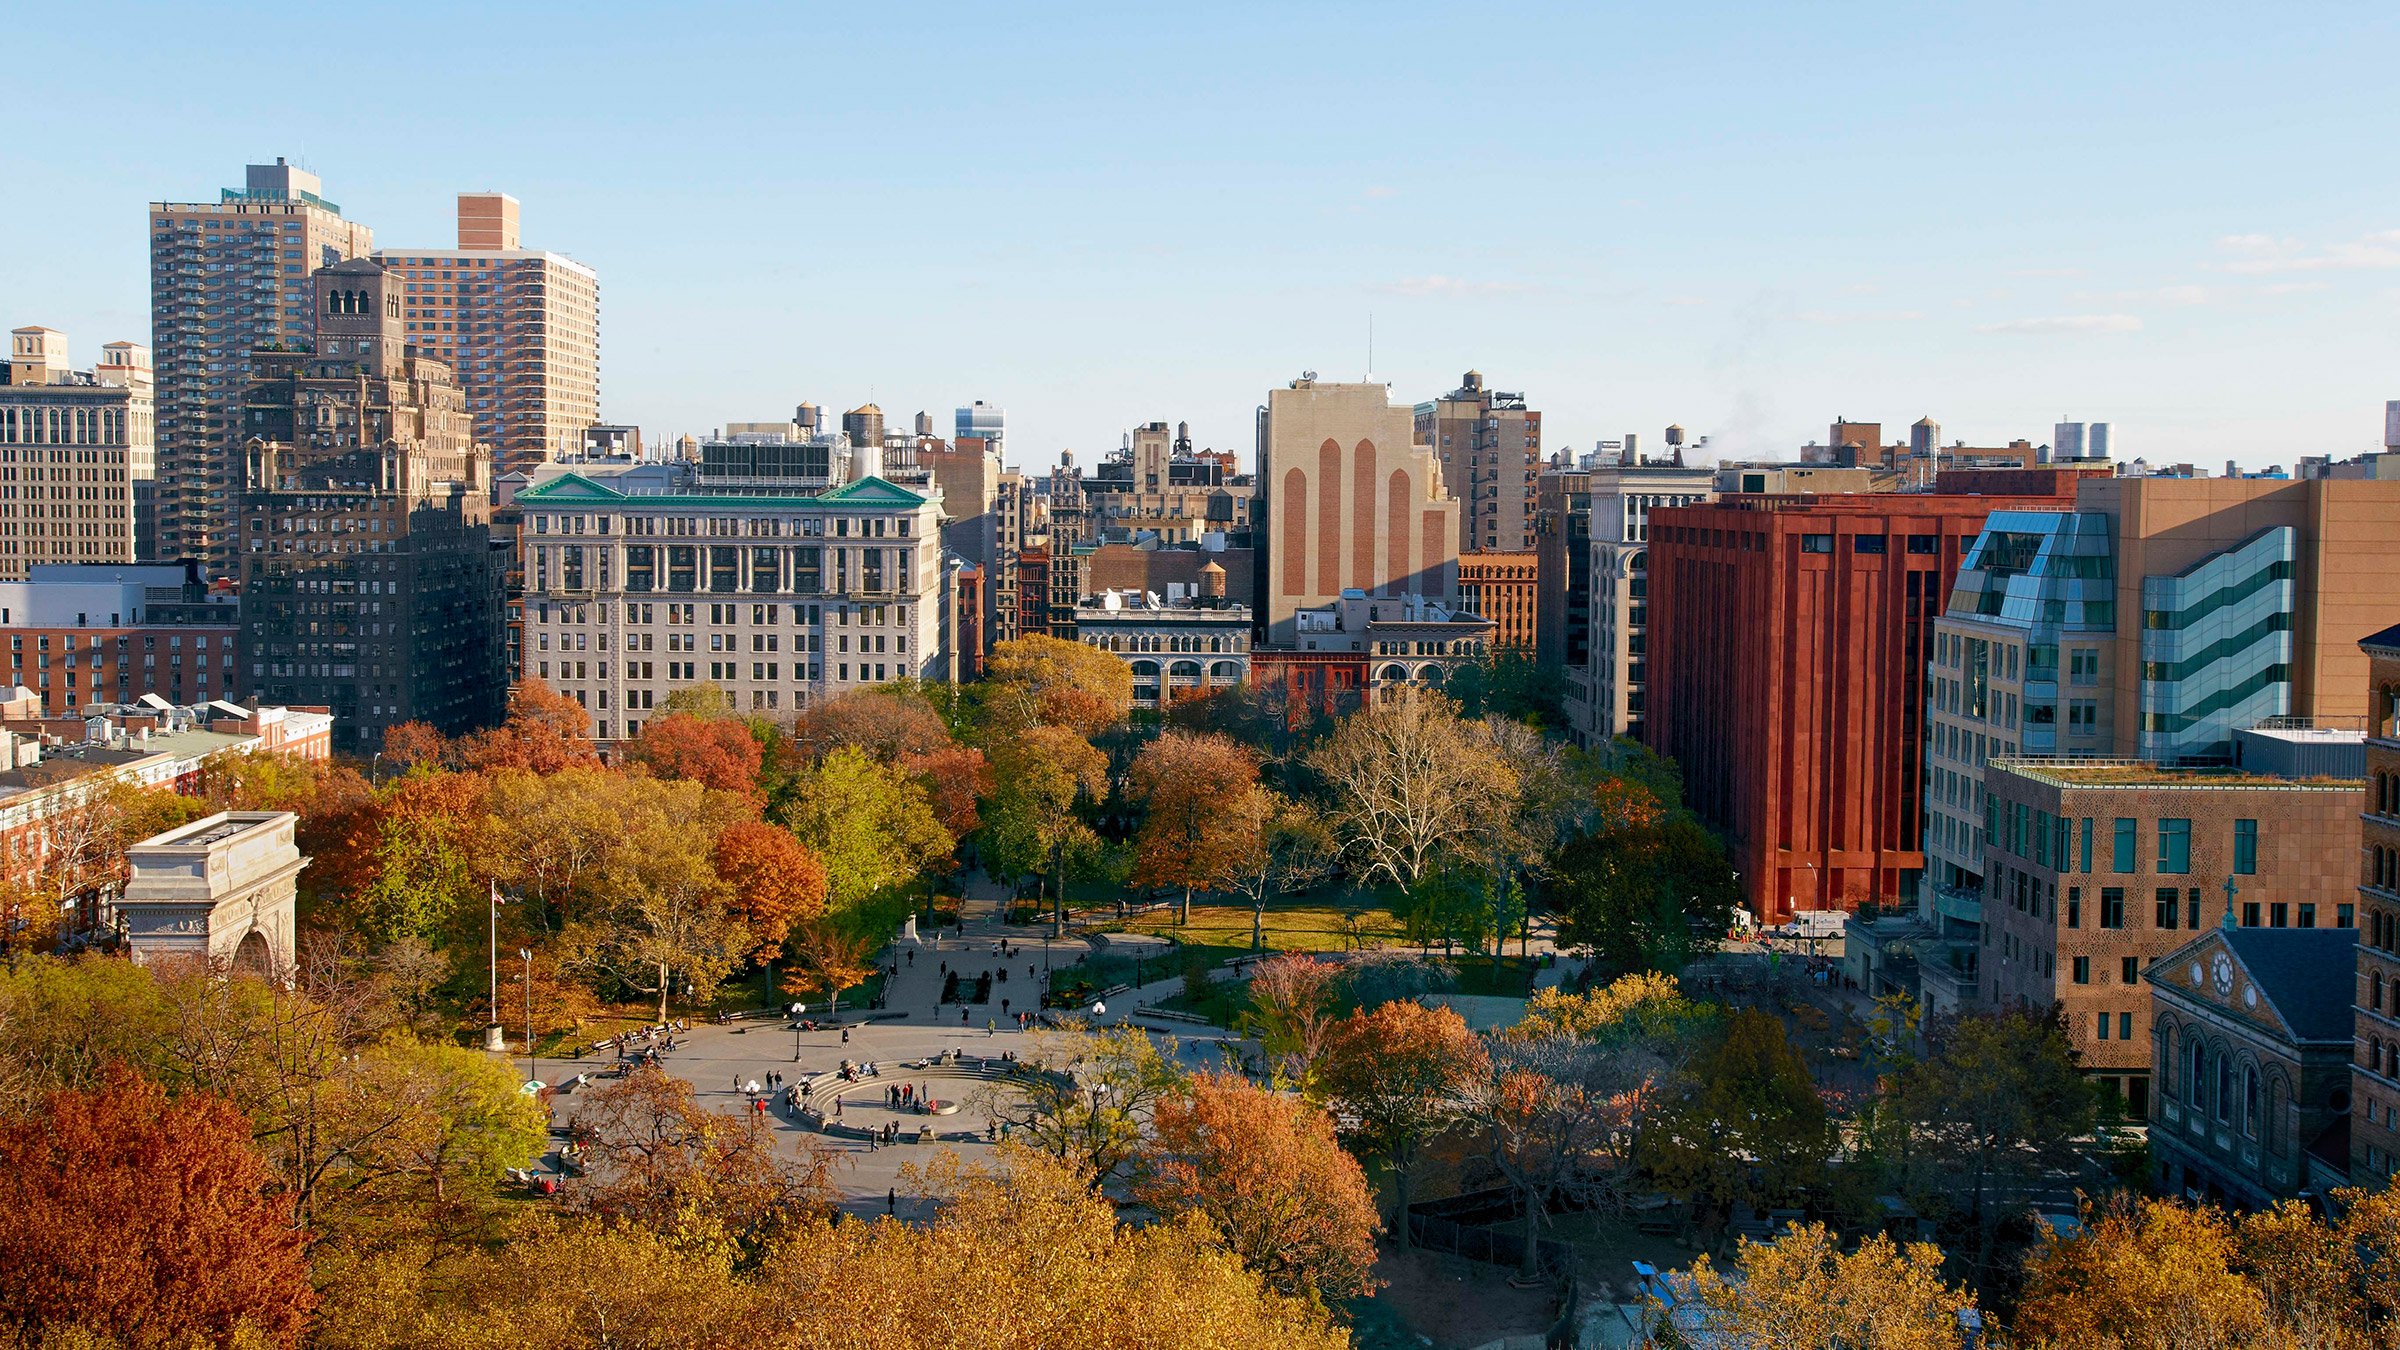 Washington Square Park in fall from aerial view